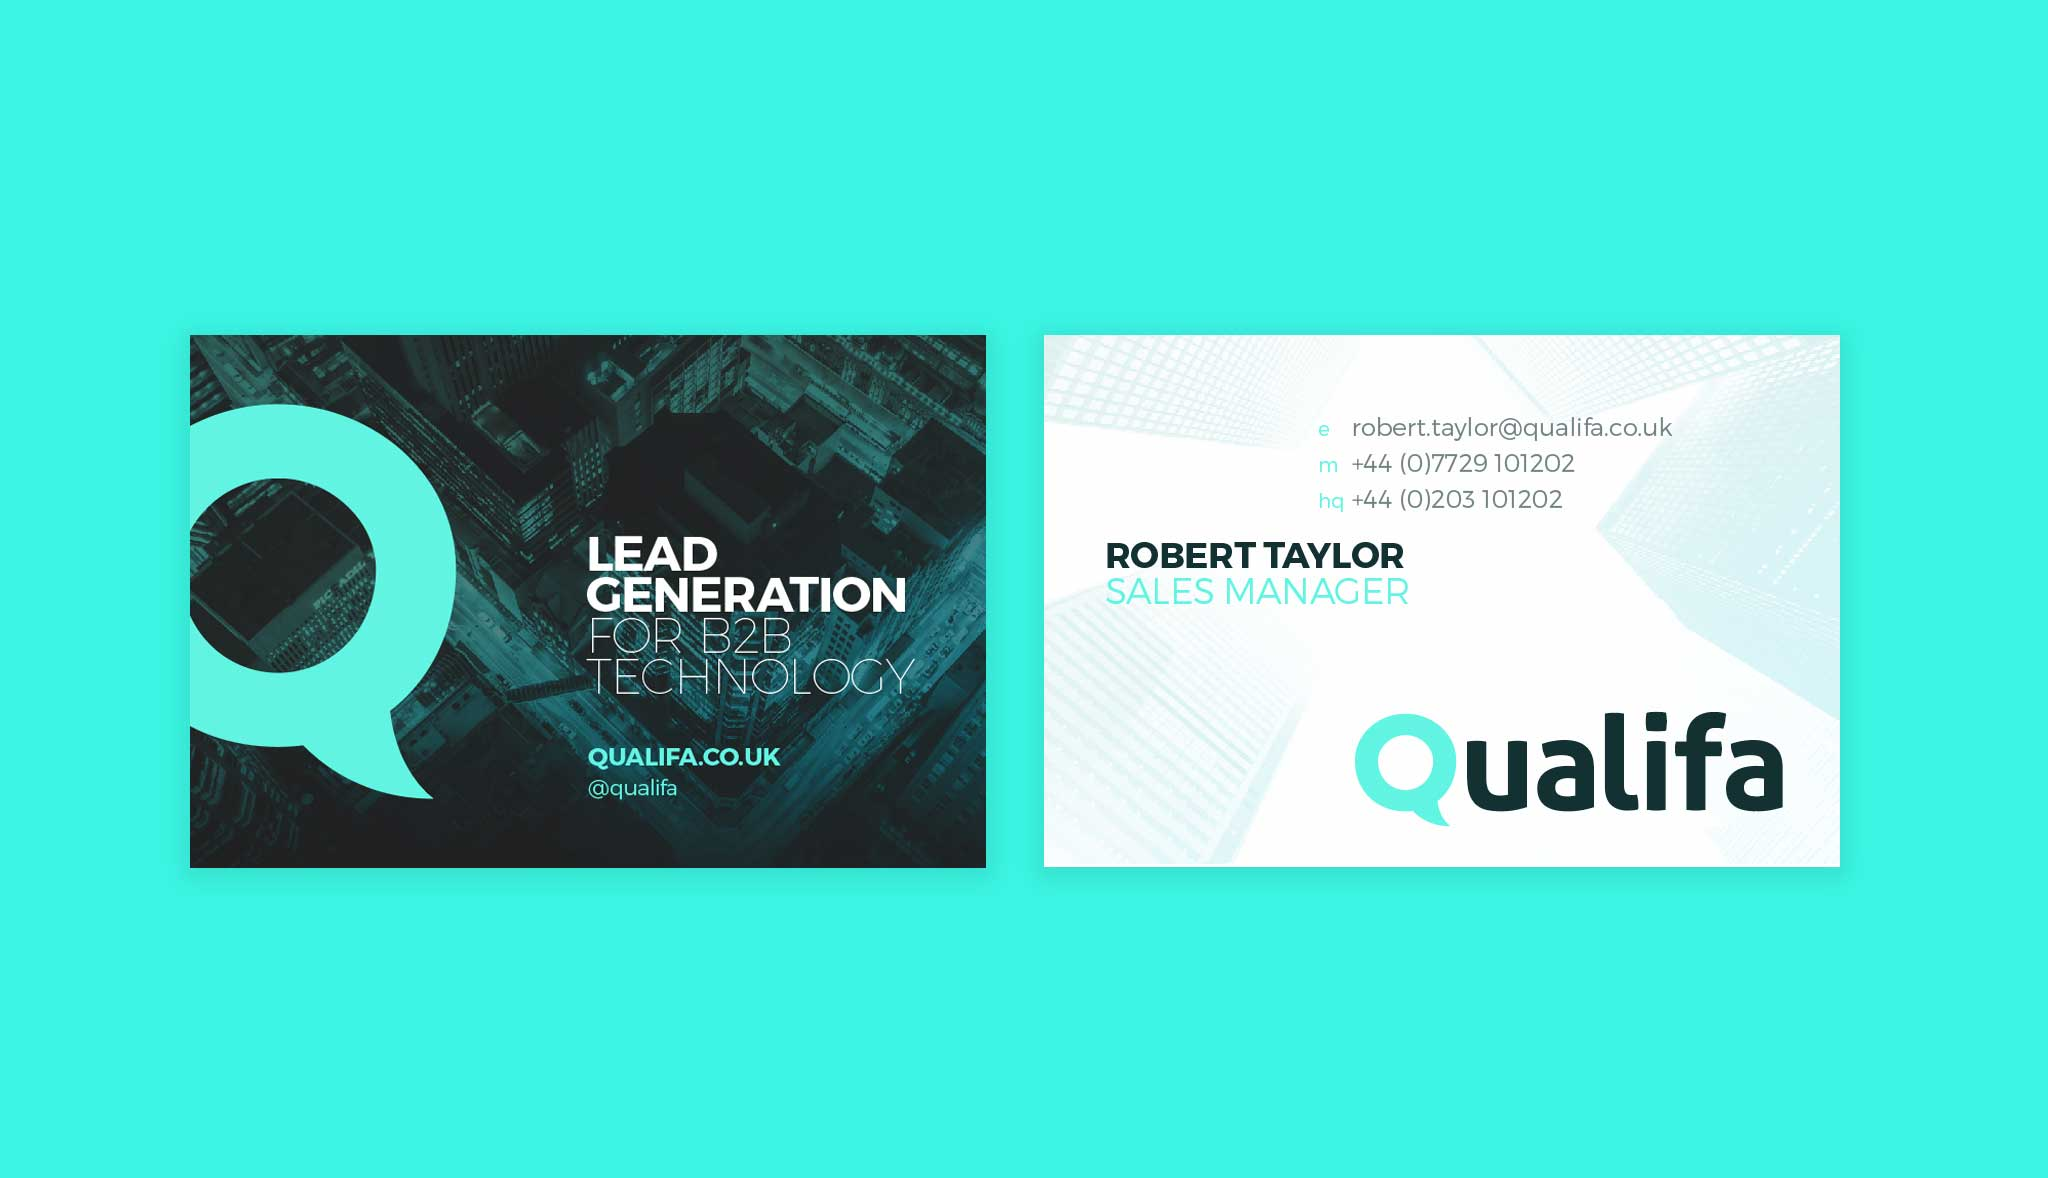 Business card design for Qualifa – Oli Pyle